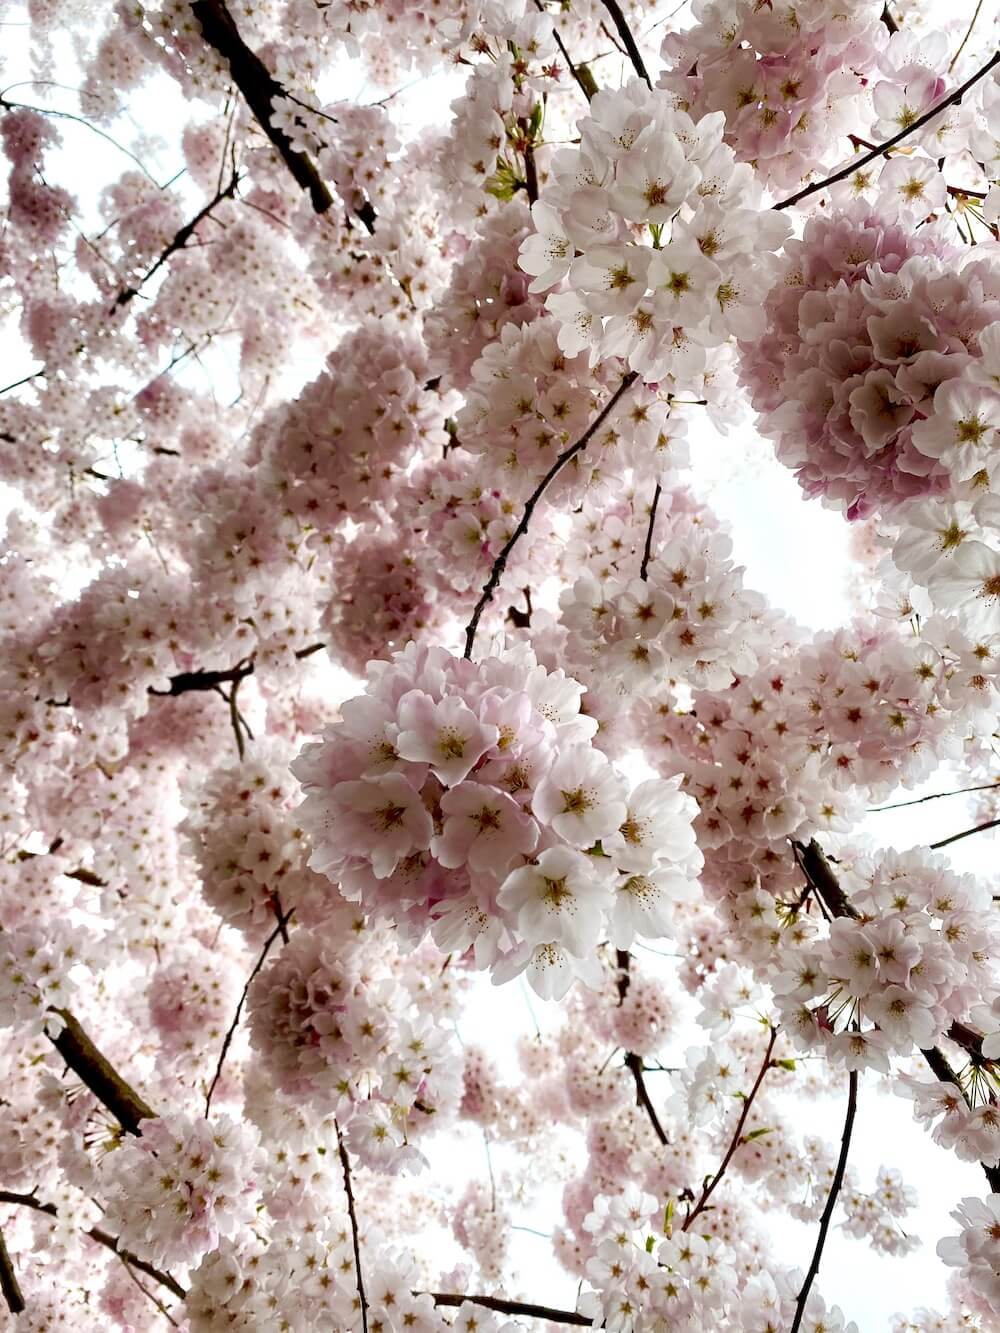 Flowers are a huge part of Pacific Northwest travel because something is always blooming year round.  Here flowing cherry blossoms burst onto the scene in Spring.